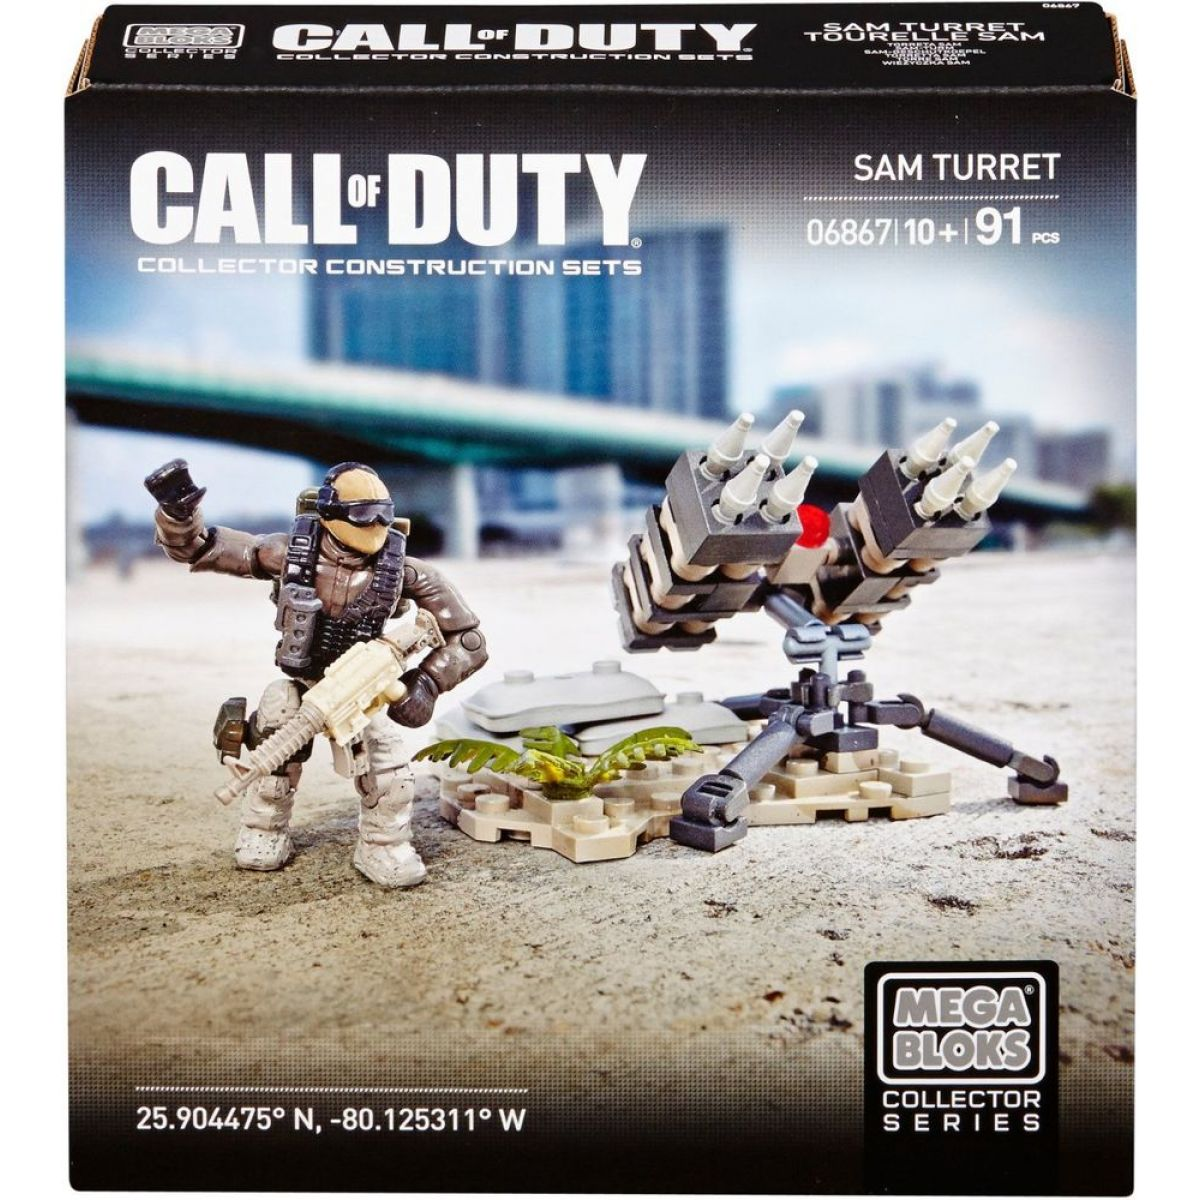 Megabloks Micro Call of Duty útok - Sam Turret